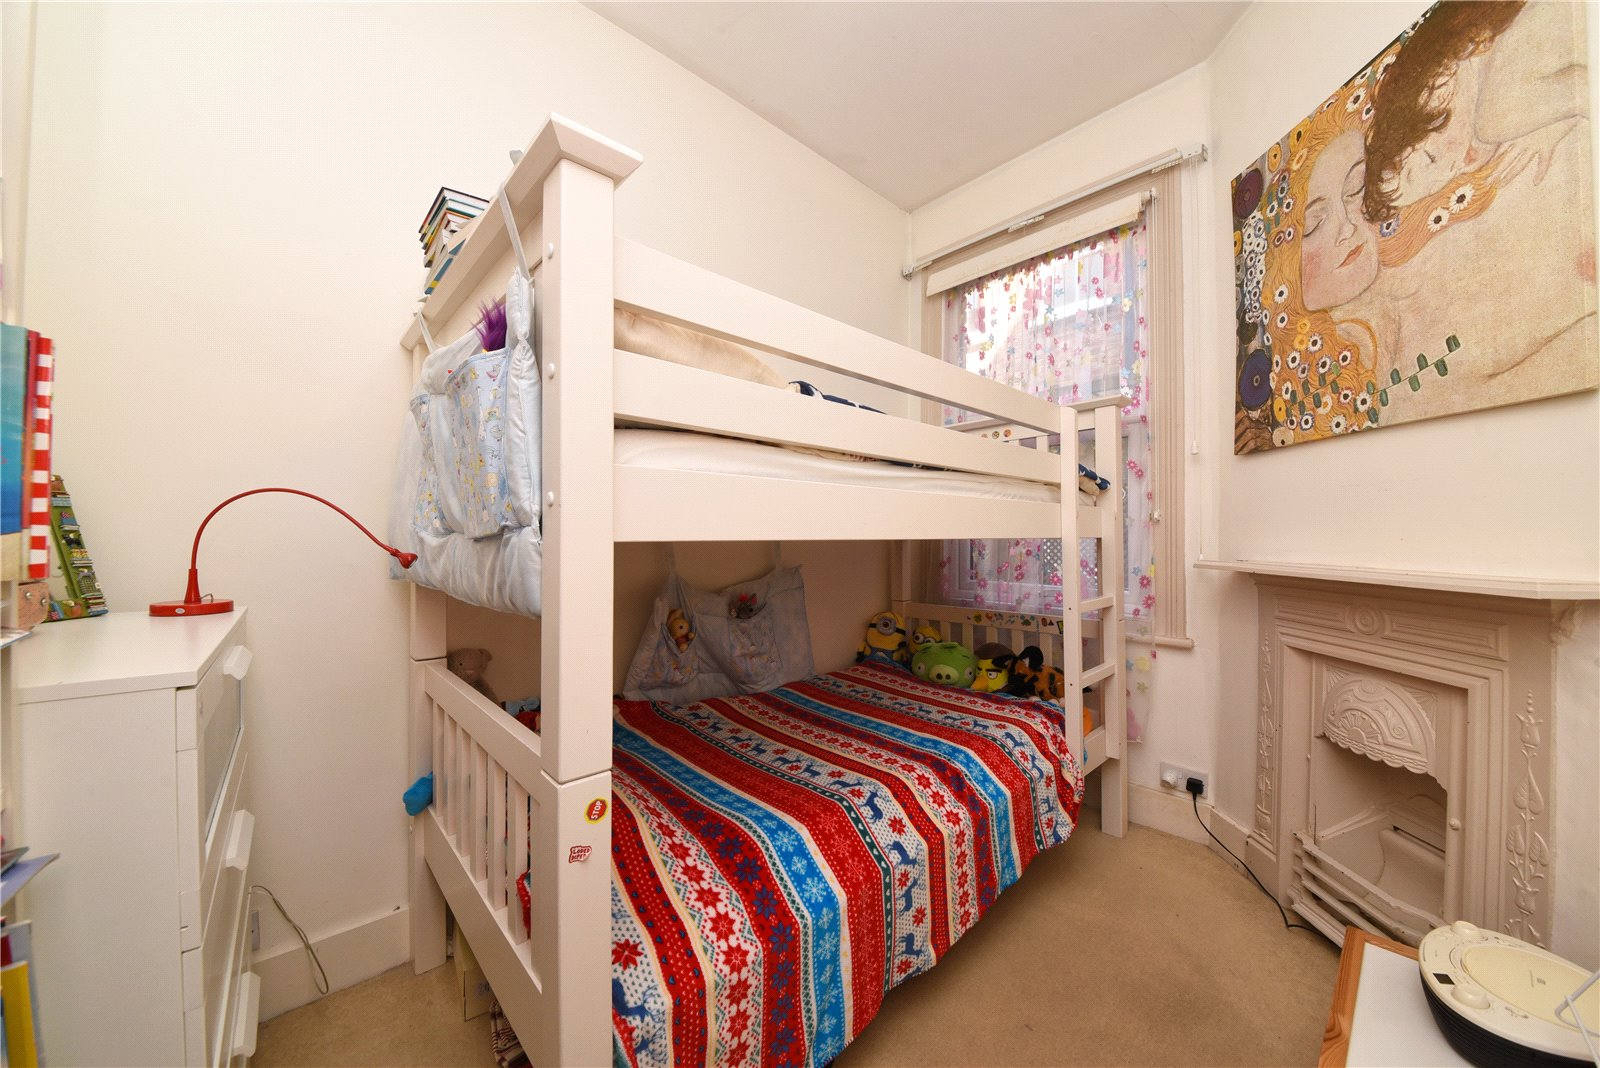 2 bed apartment for sale in East Finchley, N2 0SX 9